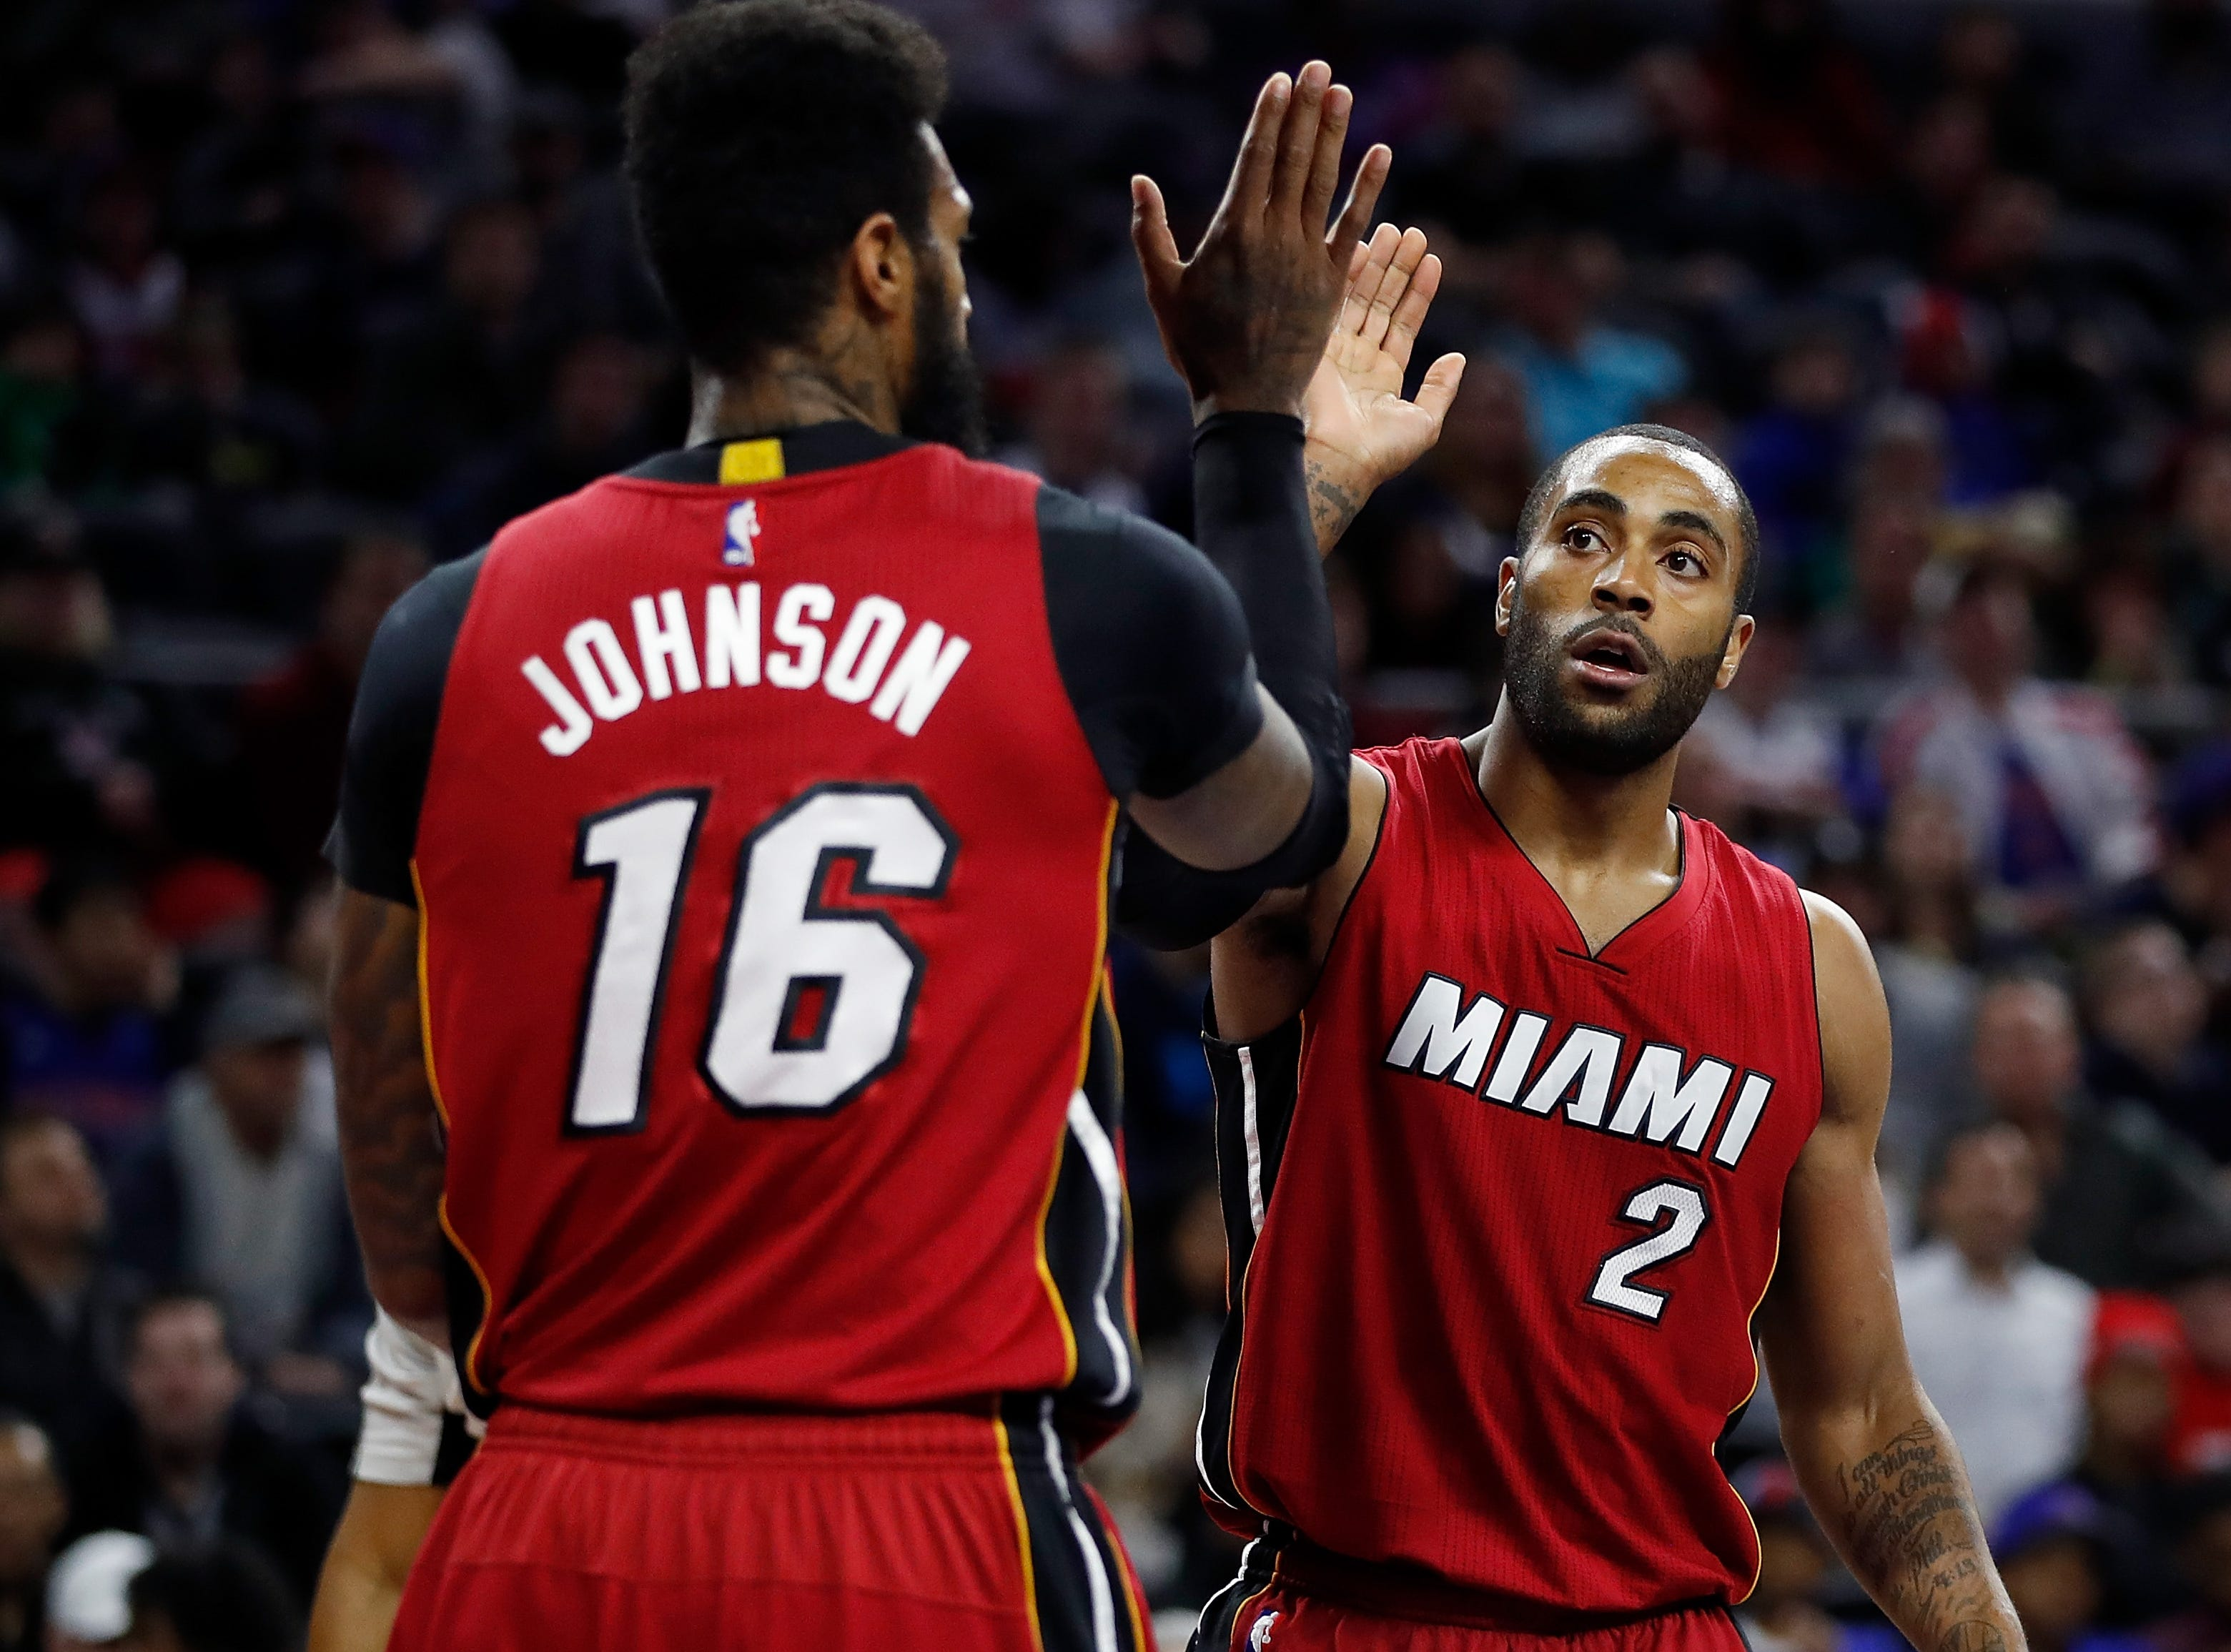 Wayne Ellington of the Miami Heat celebrates a first half play with James Johnson while playing the Detroit Pistons on March 28, 2017.